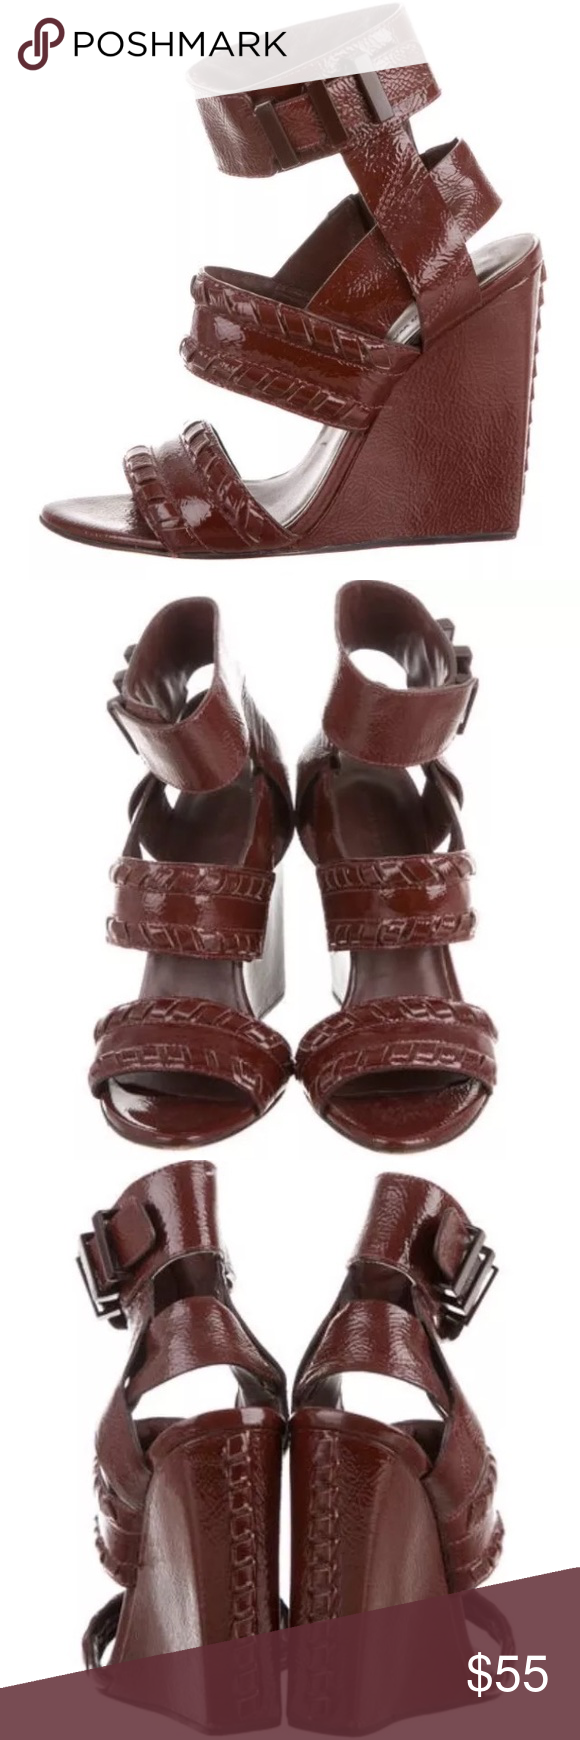 Alexander Wang patent leather wedge heels Gorgeous burgundy patent leather wedges with beautiful stitching details. Perfect for all seasons! Very comfortable. No visible signs of wear except on the soles. Original retail: +$450 Alexander Wang Shoes Wedges